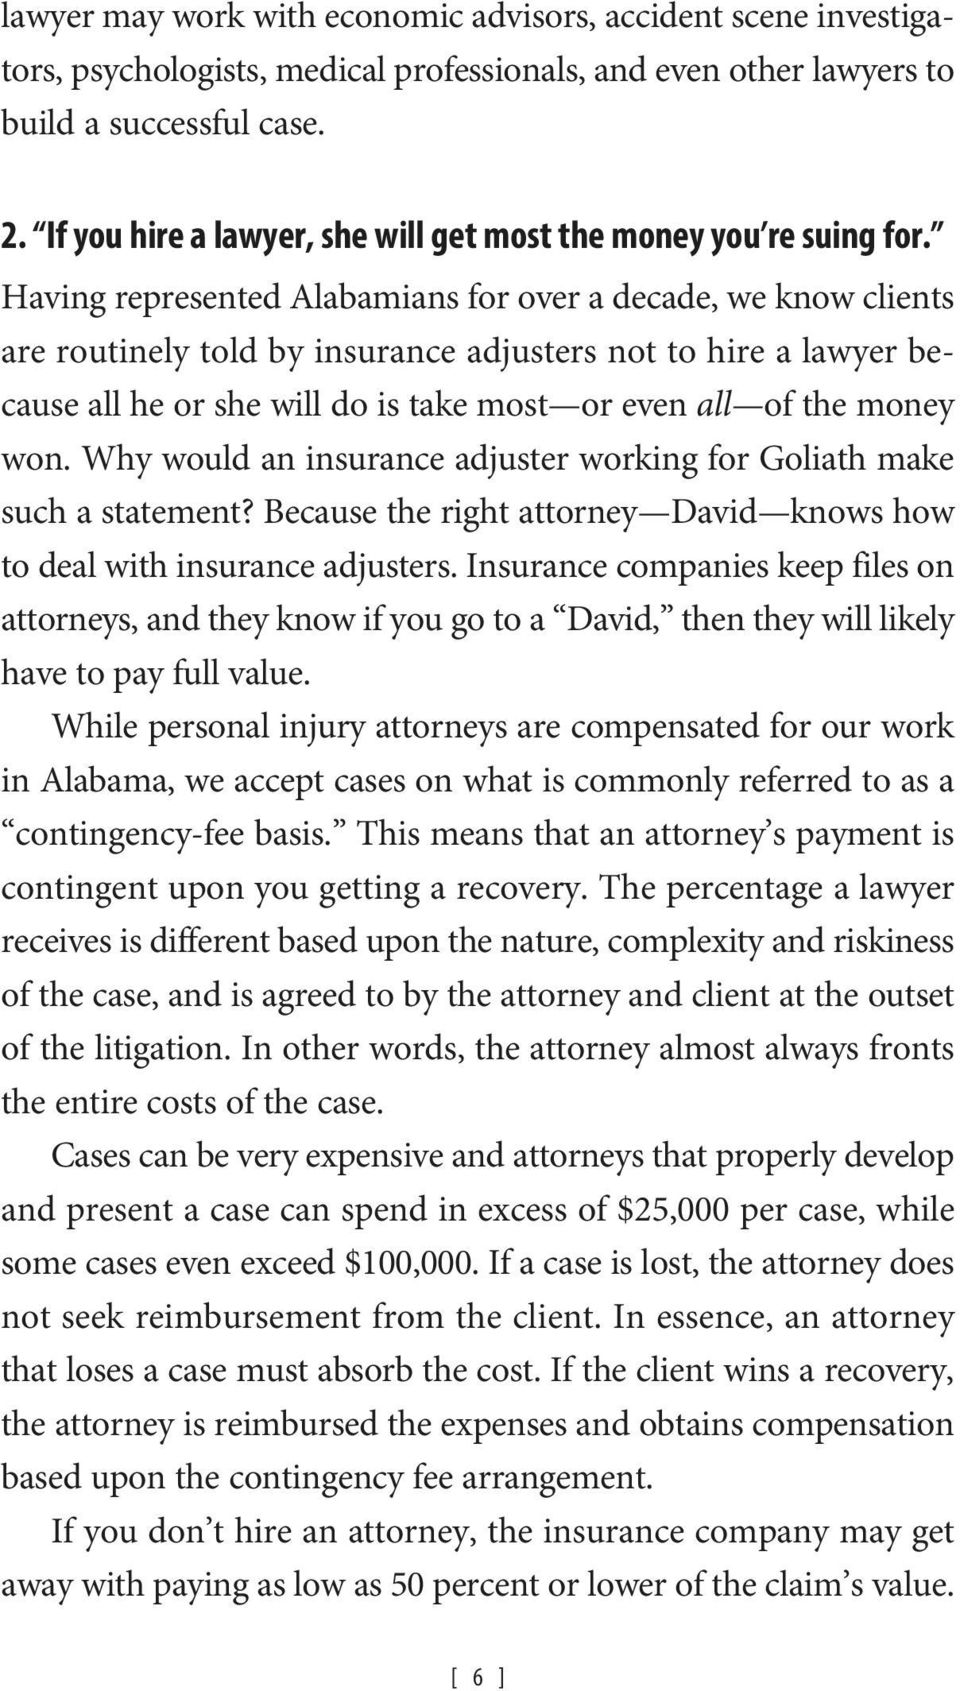 Having represented Alabamians for over a decade, we know clients are routinely told by insurance adjusters not to hire a lawyer because all he or she will do is take most or even all of the money won.